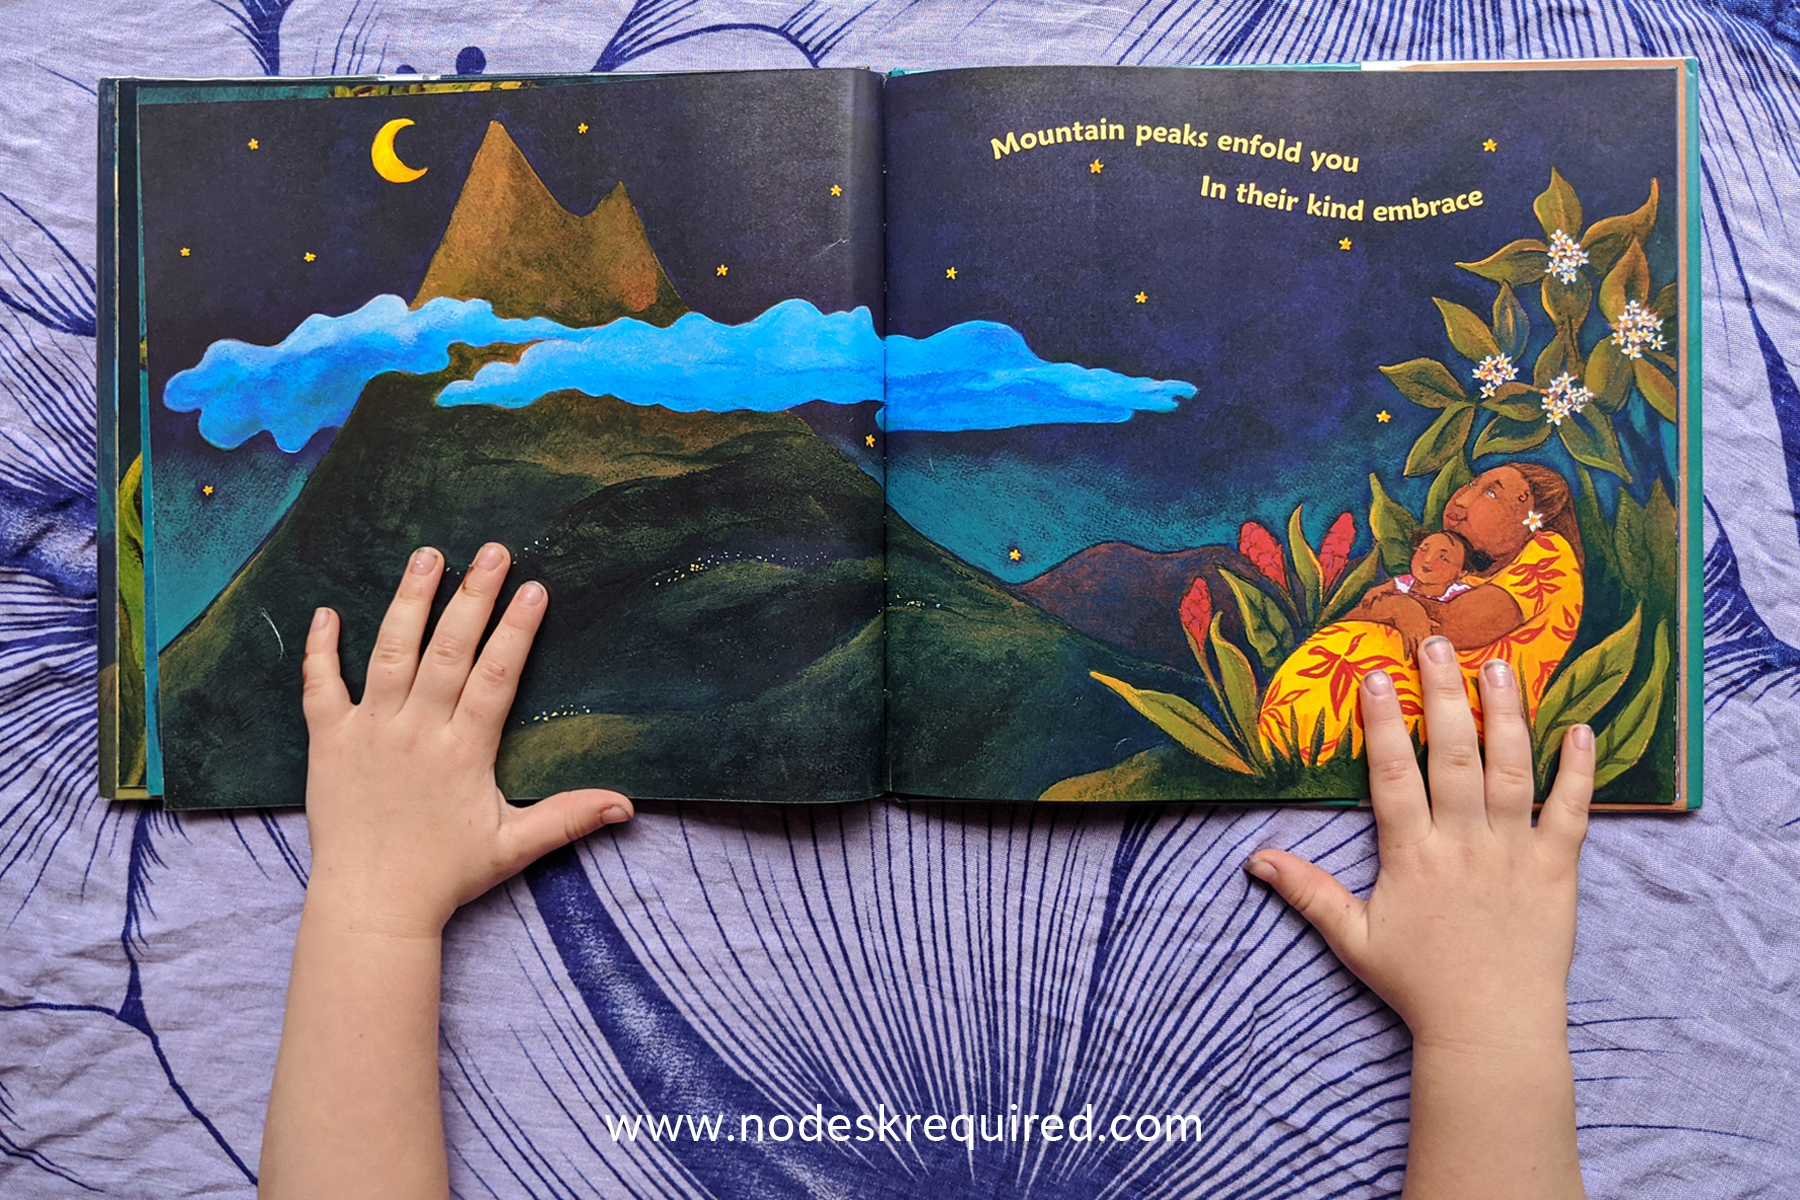 Hawaii Hula Lullaby book with preschooler hands